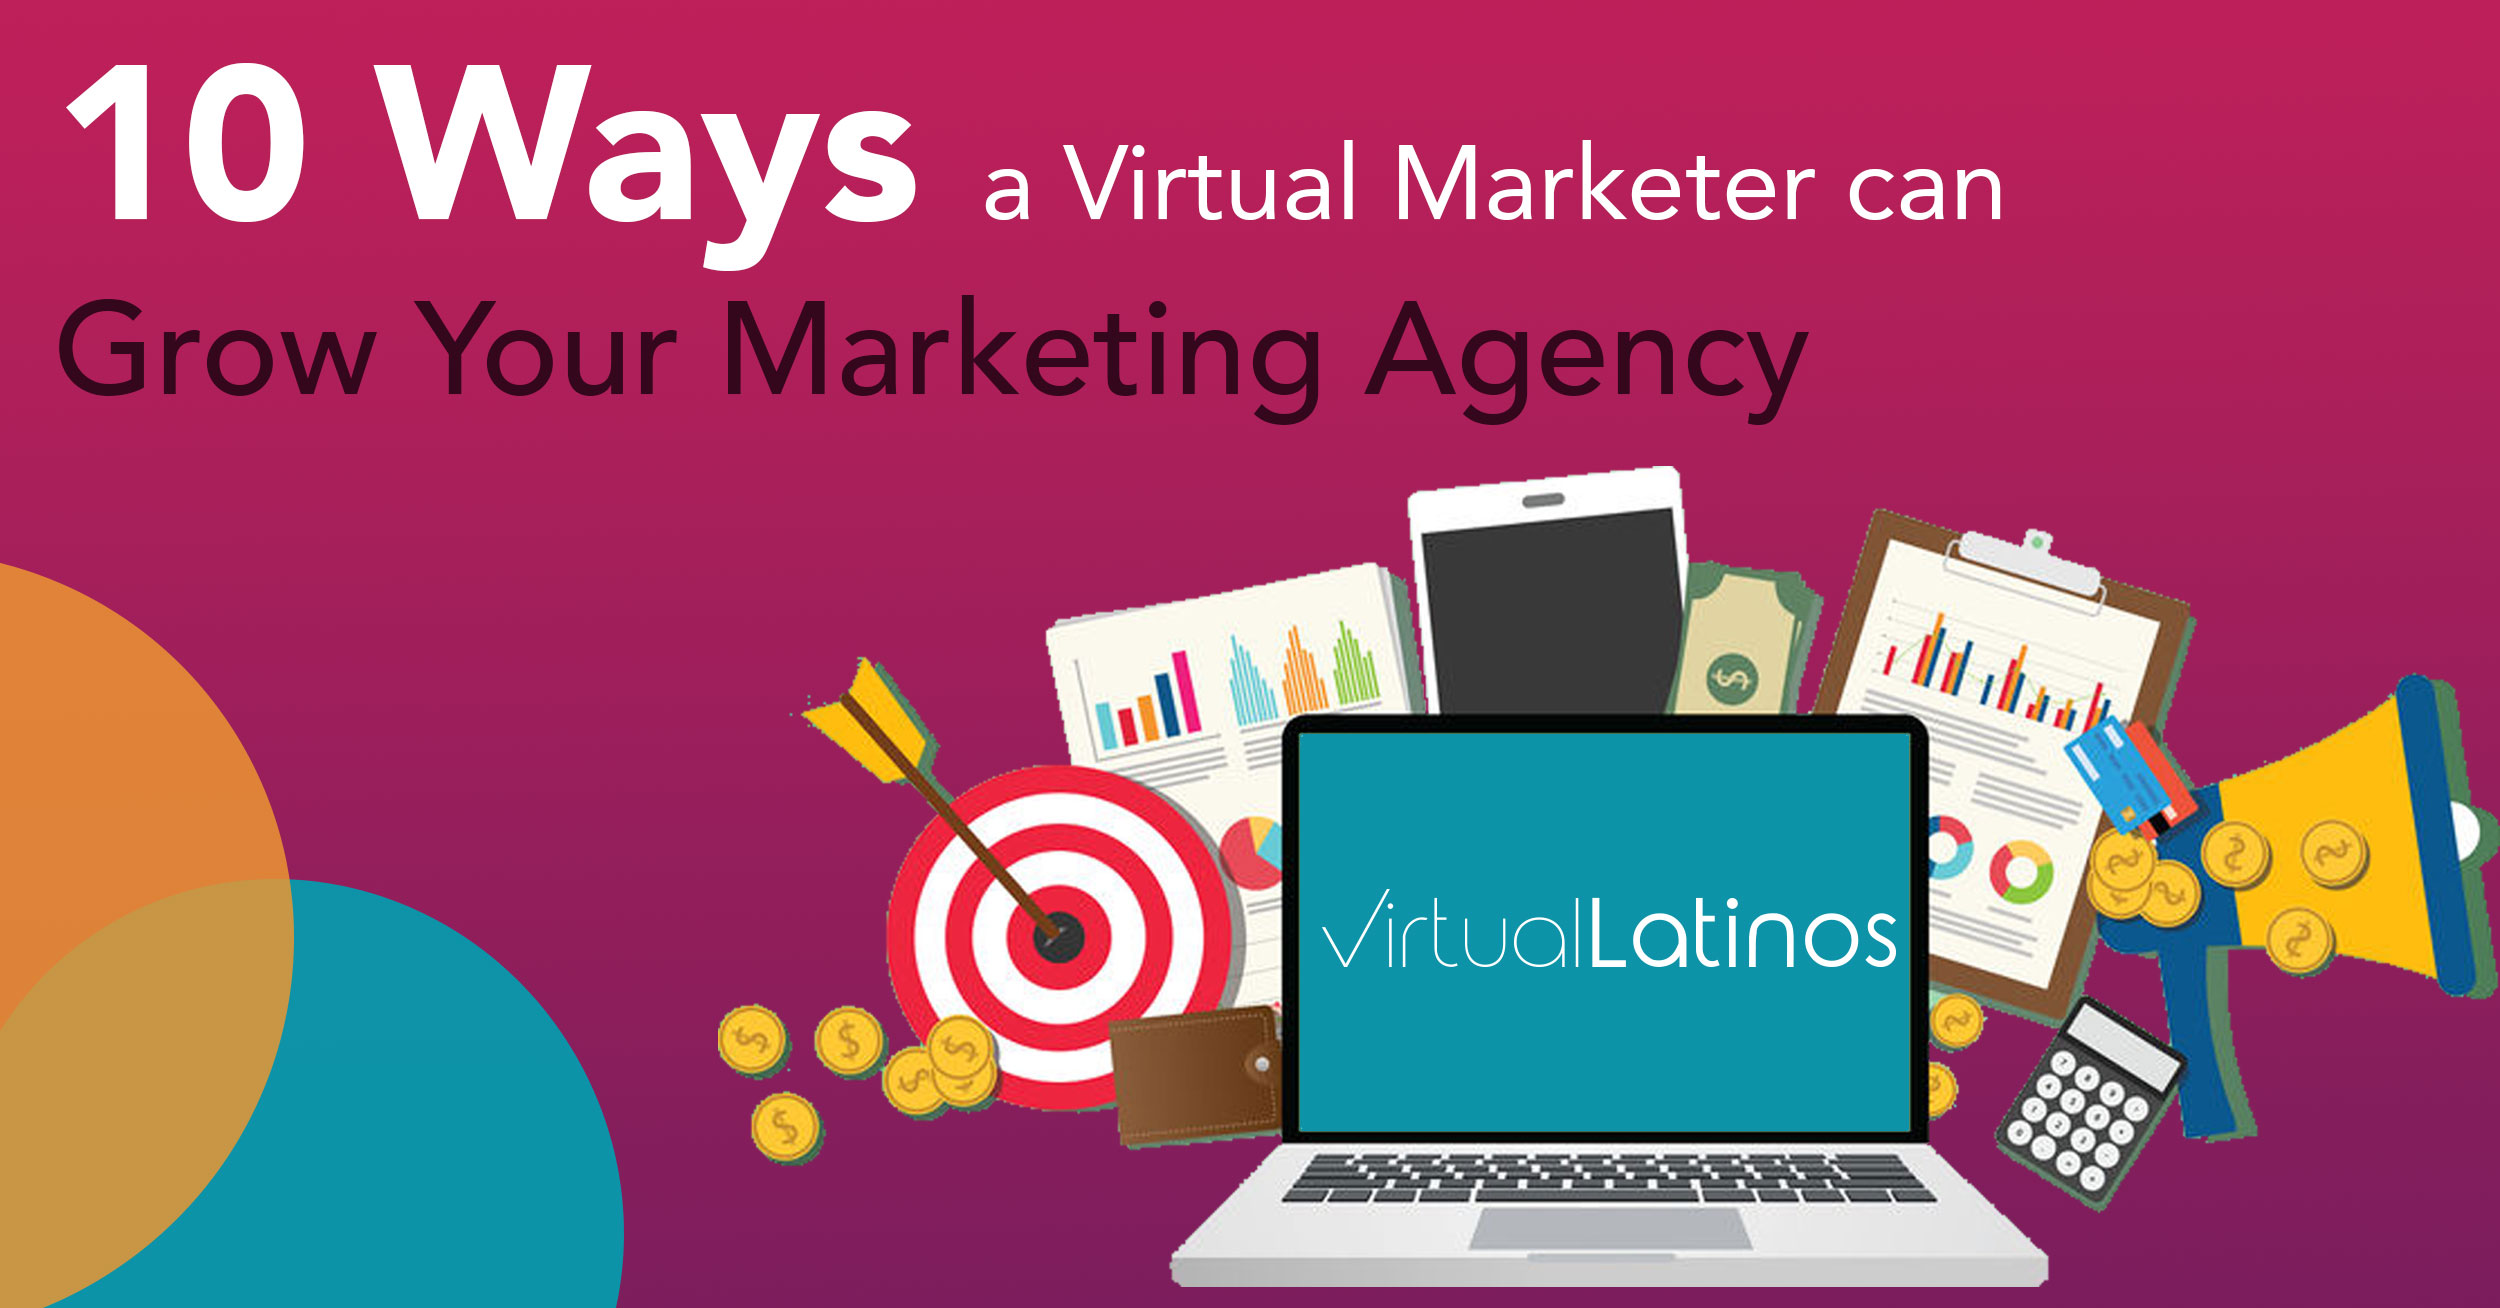 10 Ways a virtual marketer can help grow your marketing agency